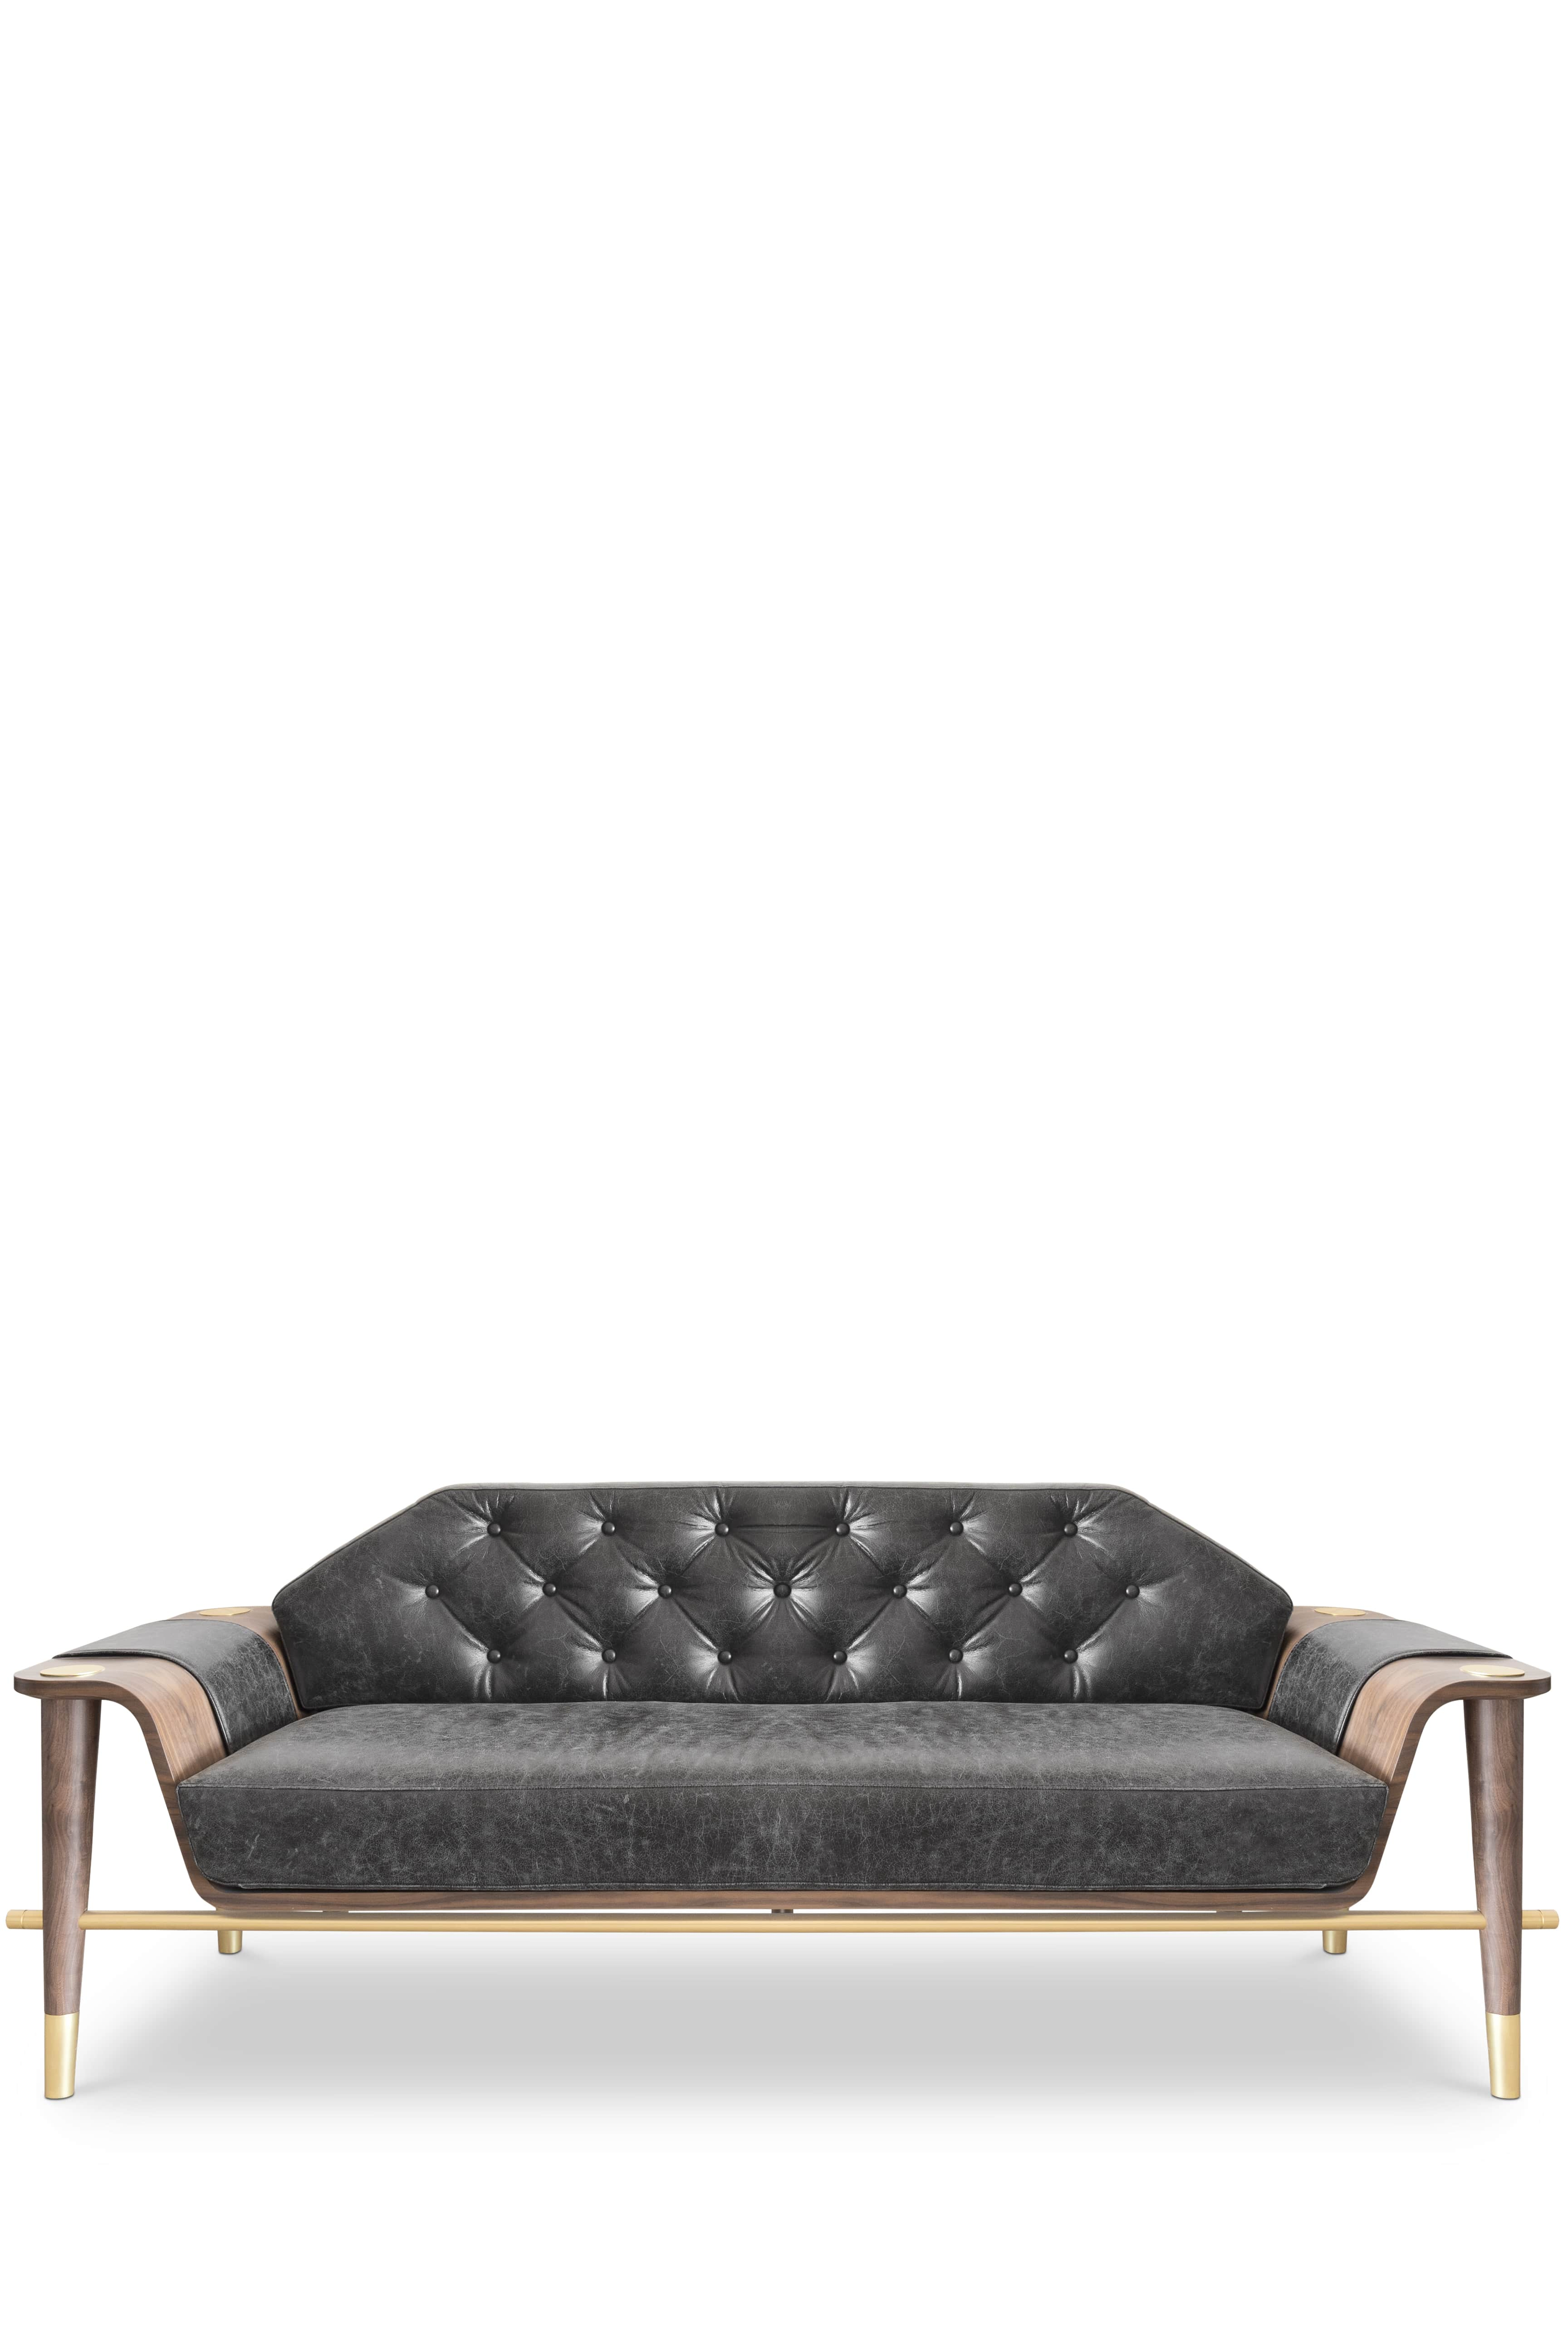 Curtis Sofa is a modern piece with a beautiful dark walnut structure.